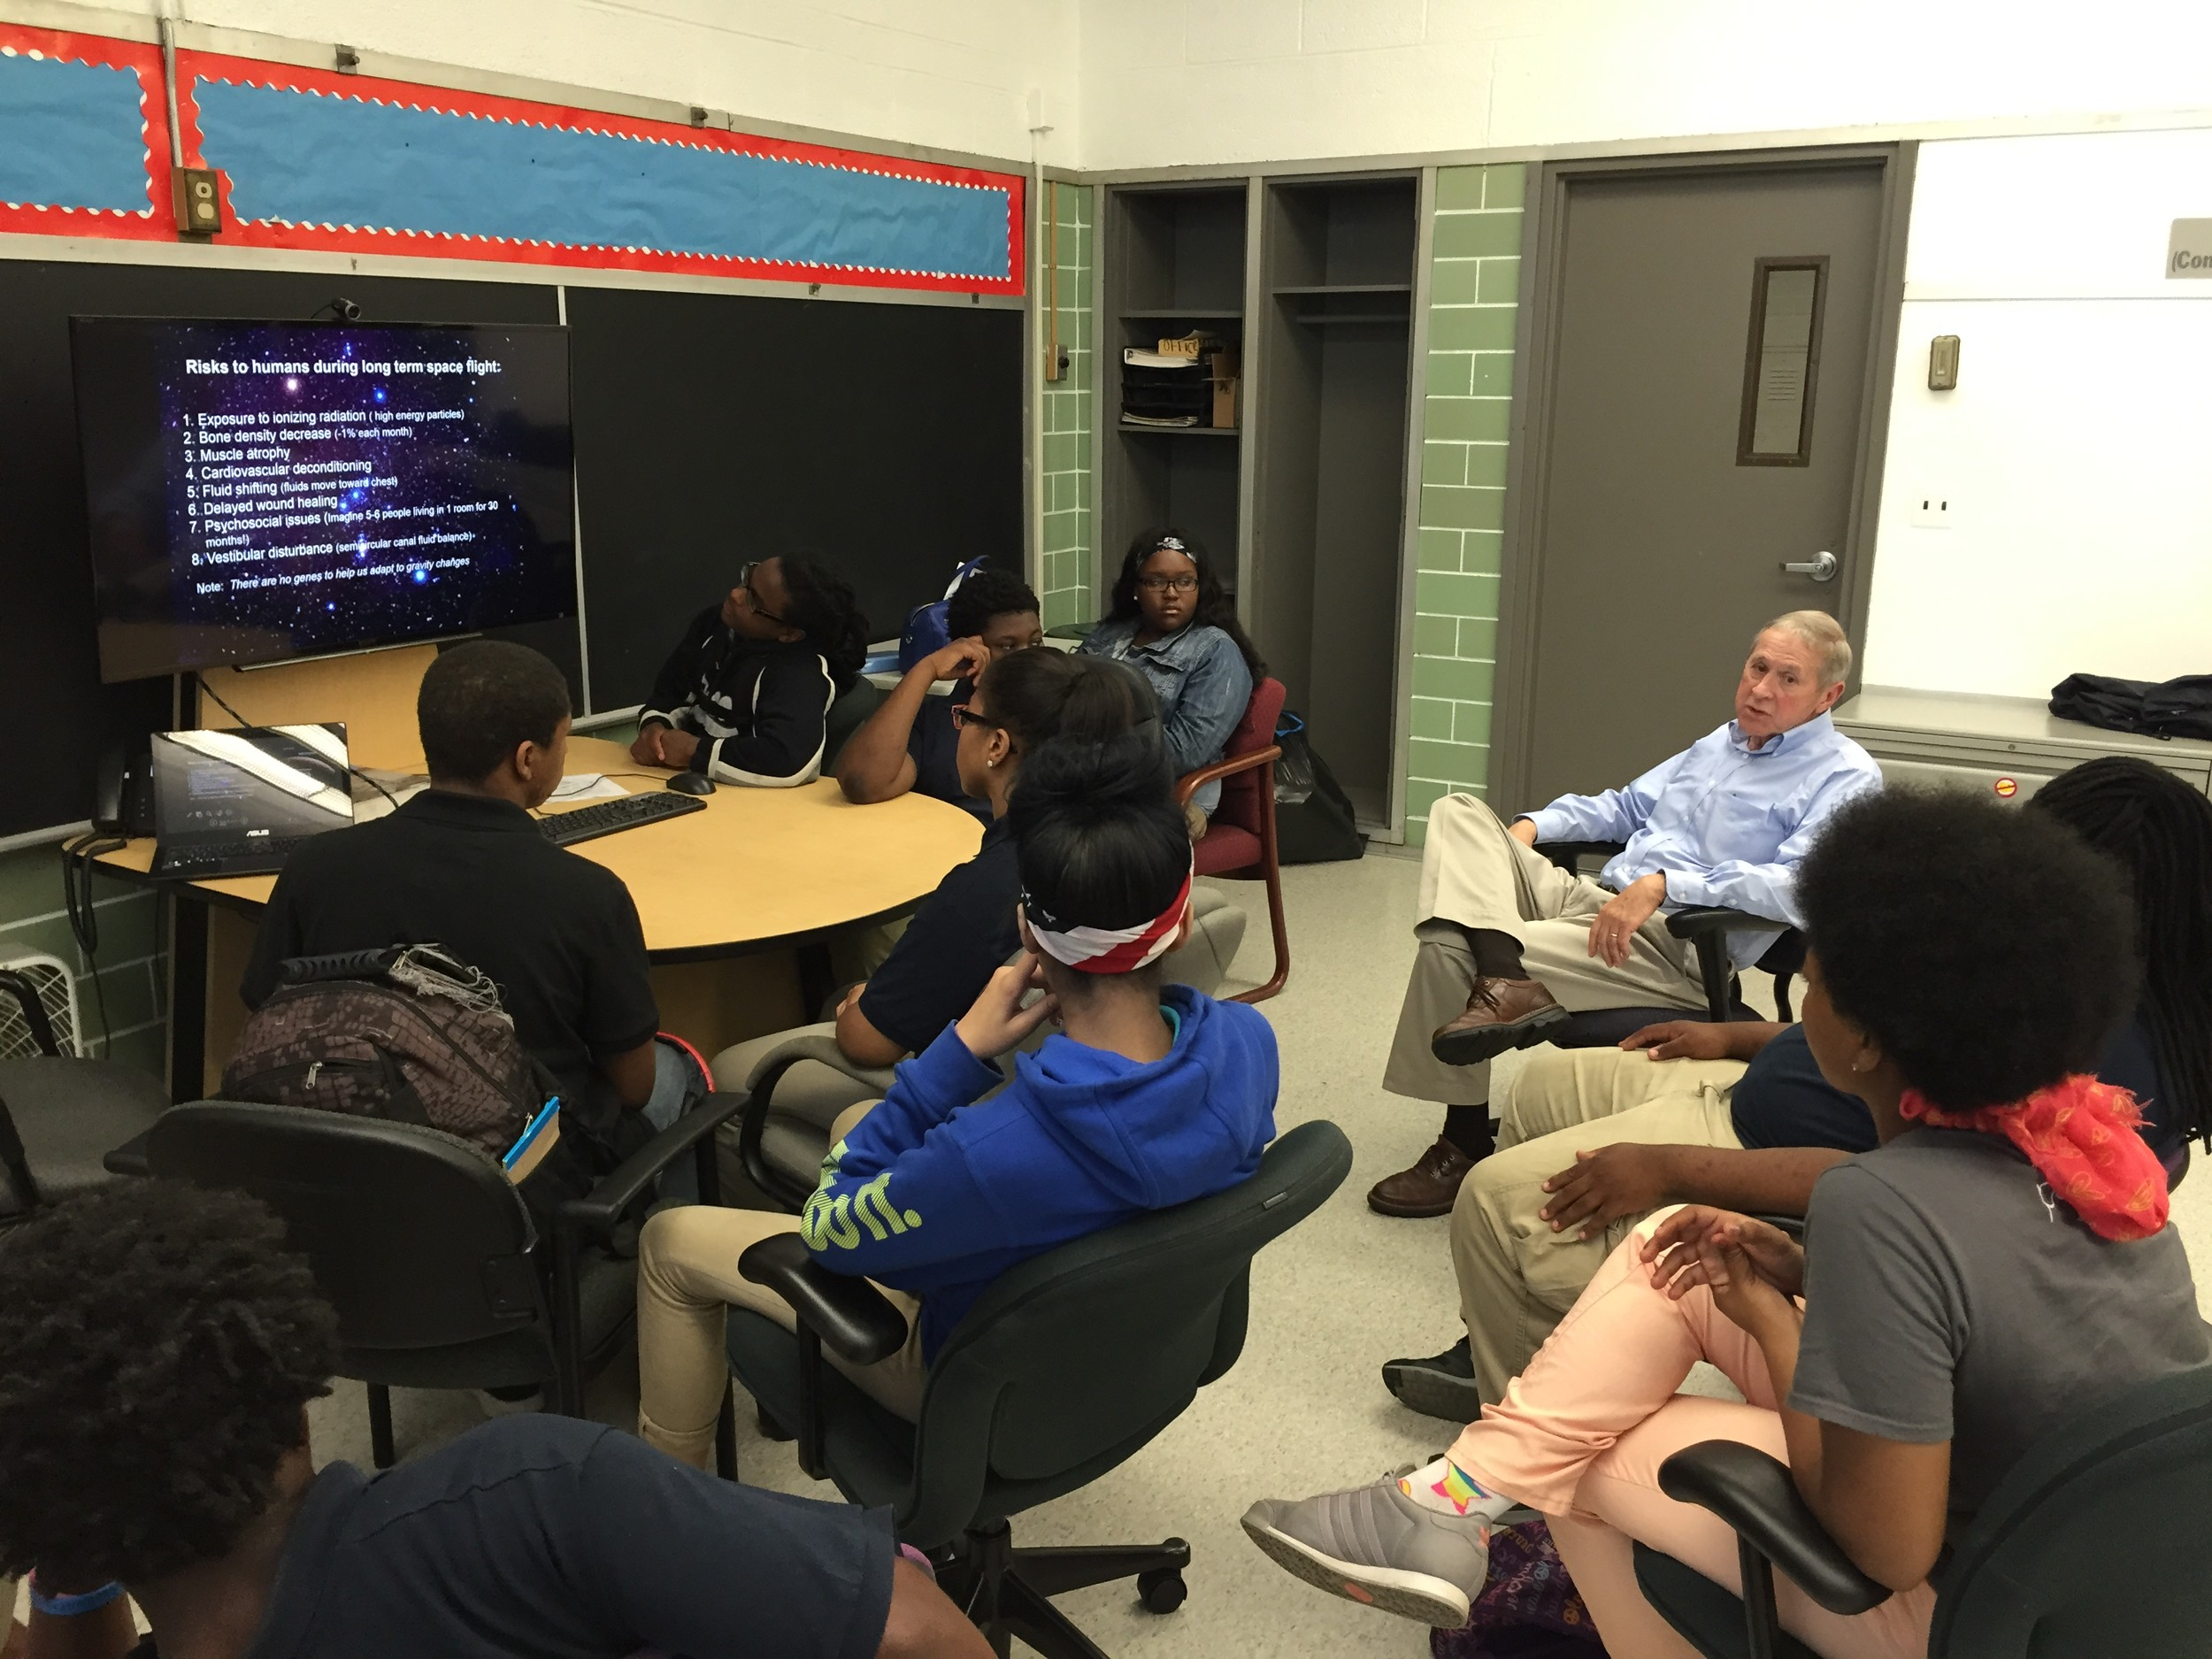 Orion's Quest Founder and Executive Director Peter Lawrie discusses a project with students at Cody High School in Michigan.